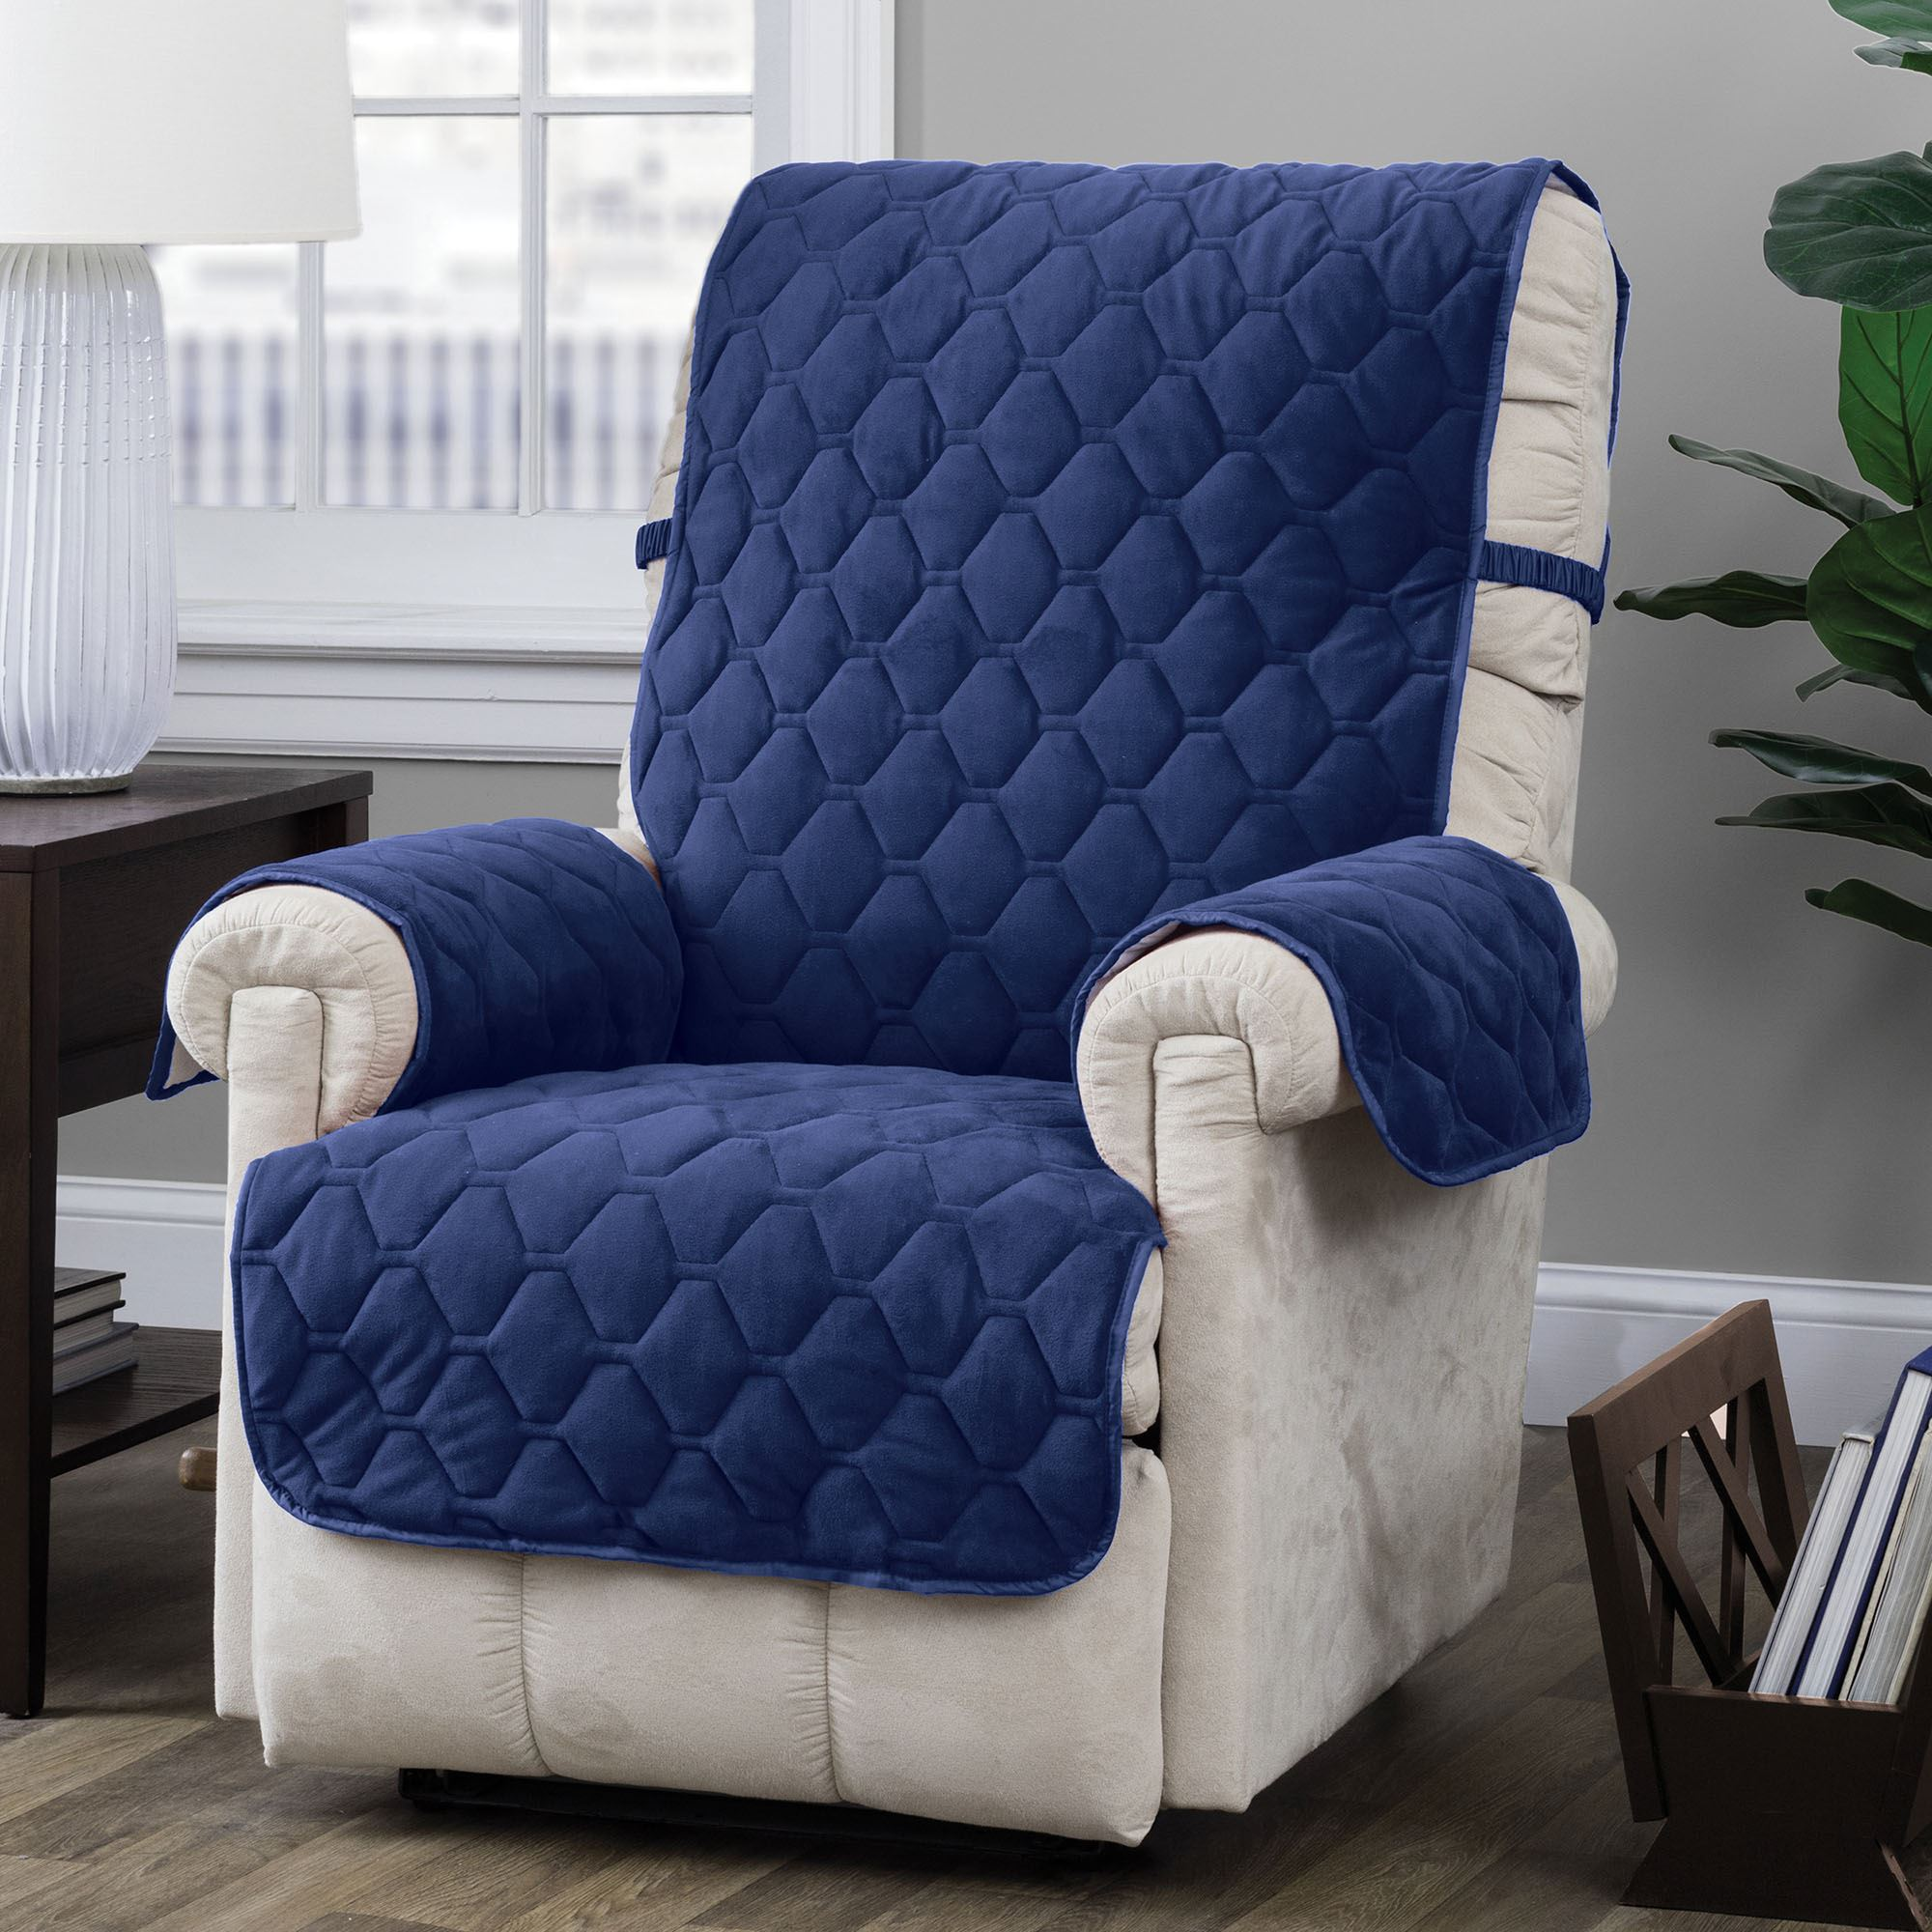 Geo Regal Blue Quilted Furniture Protectors With Tuck